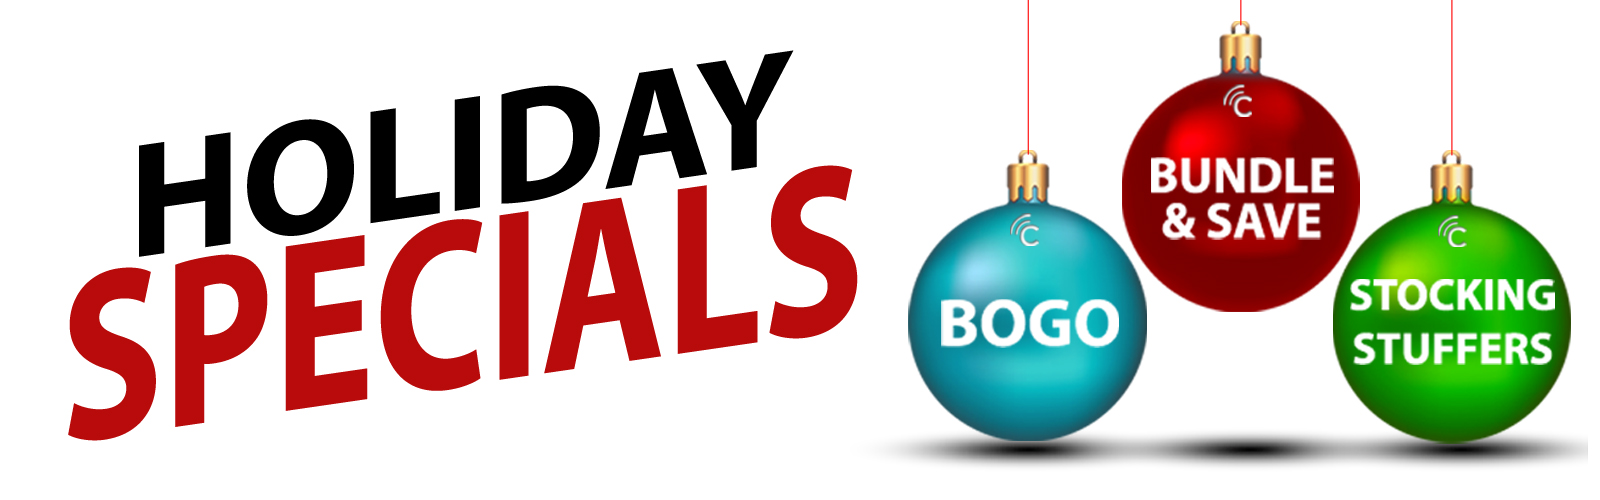 holiday-specials-landing-page-banner-2015.jpg